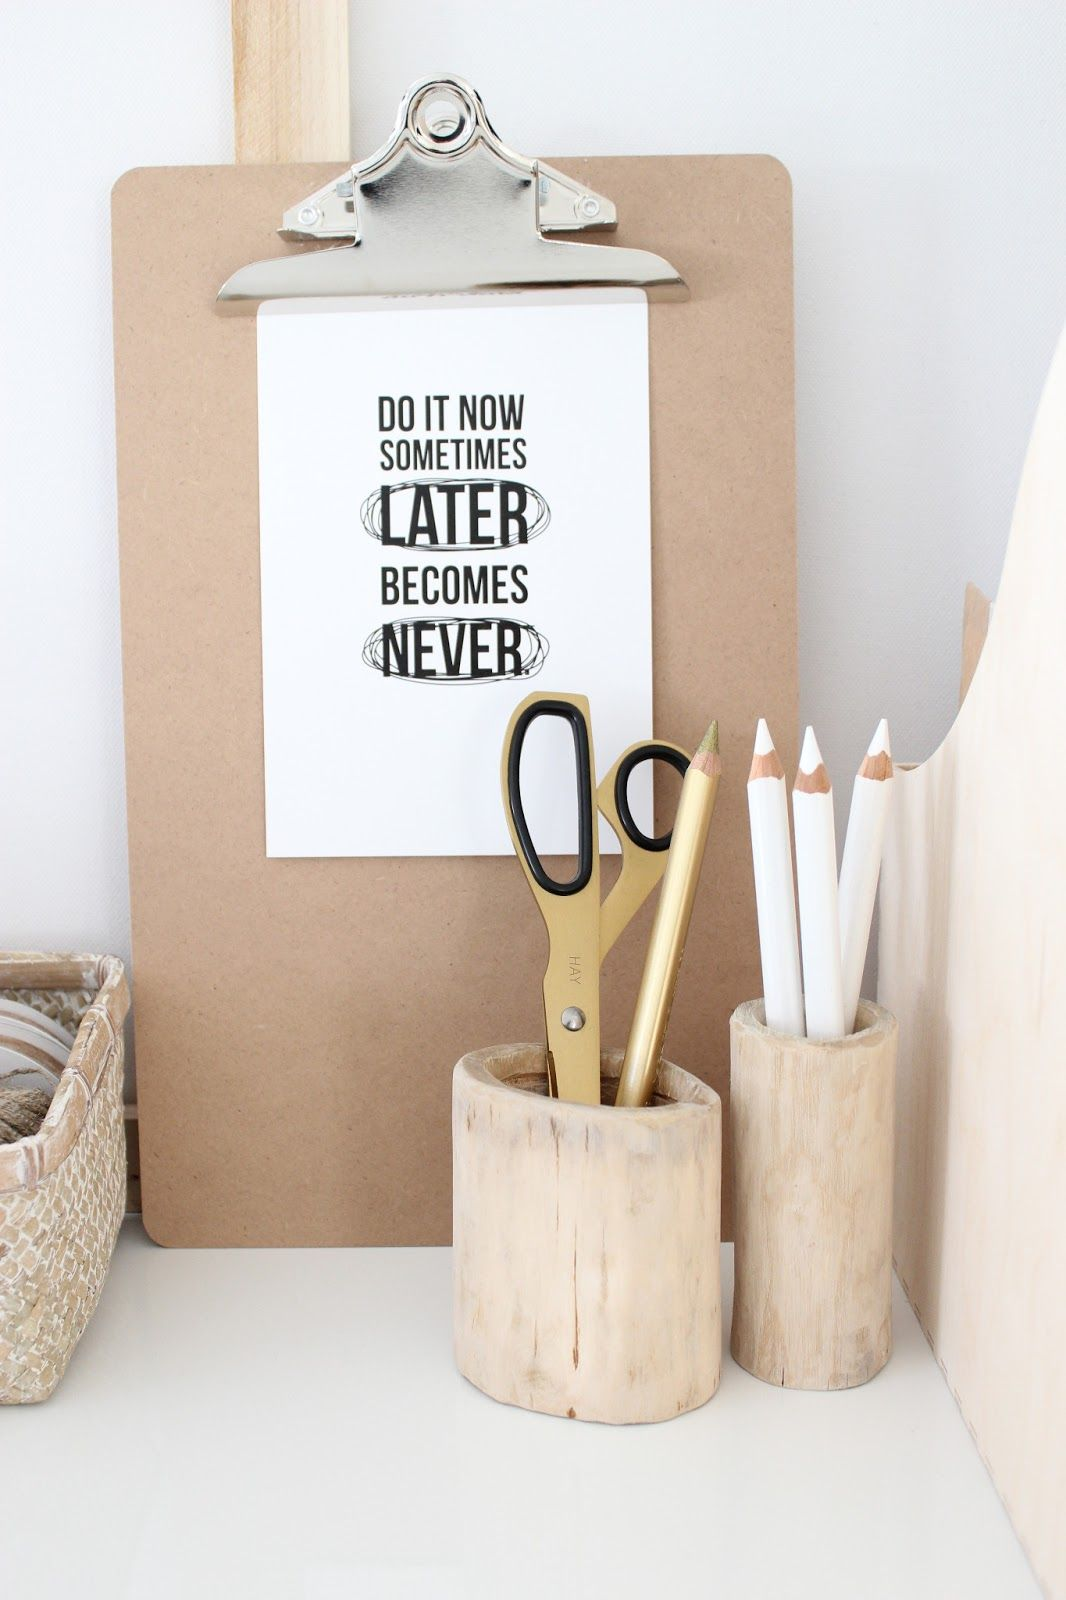 [ CLIPBOARD + QUOTE ] #office #officeinspiration